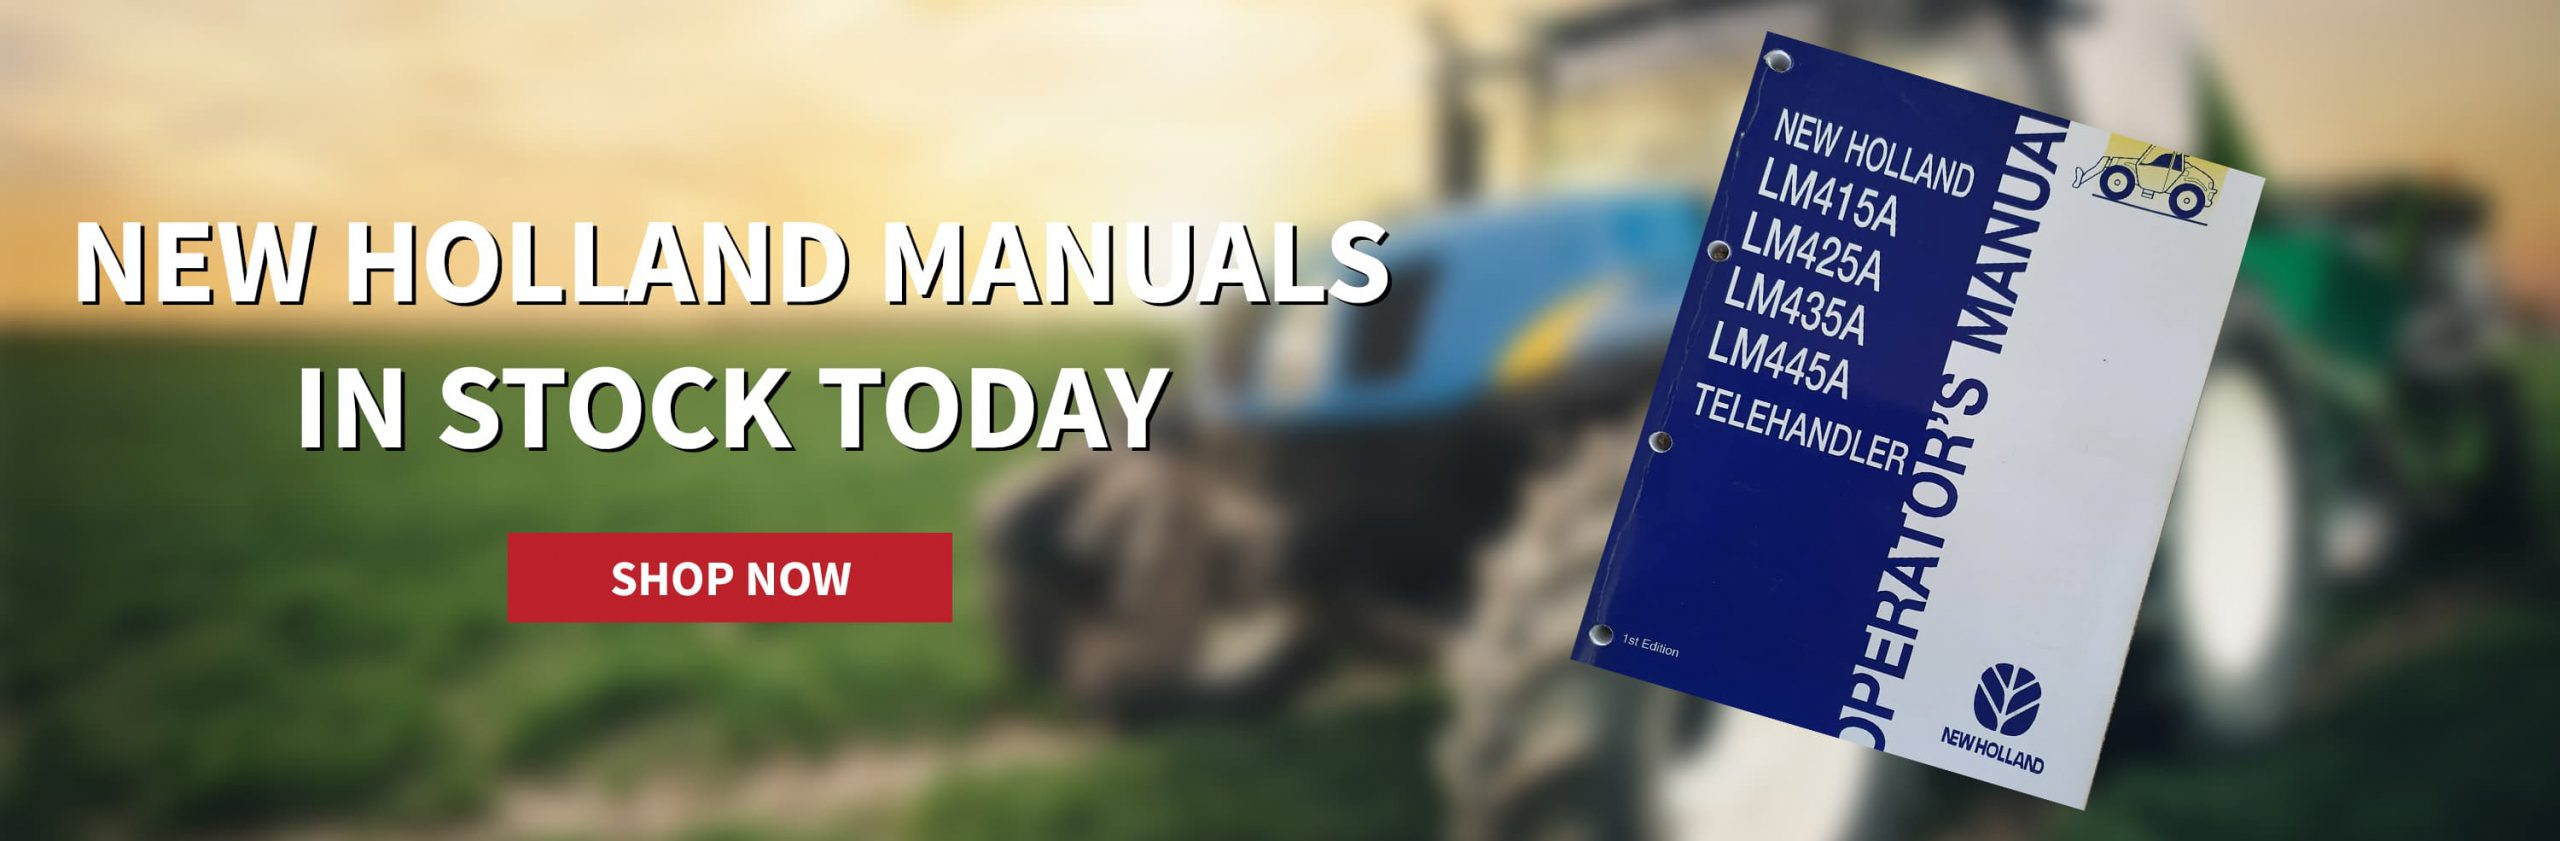 New Holland manuals now in stock with SPS Parts